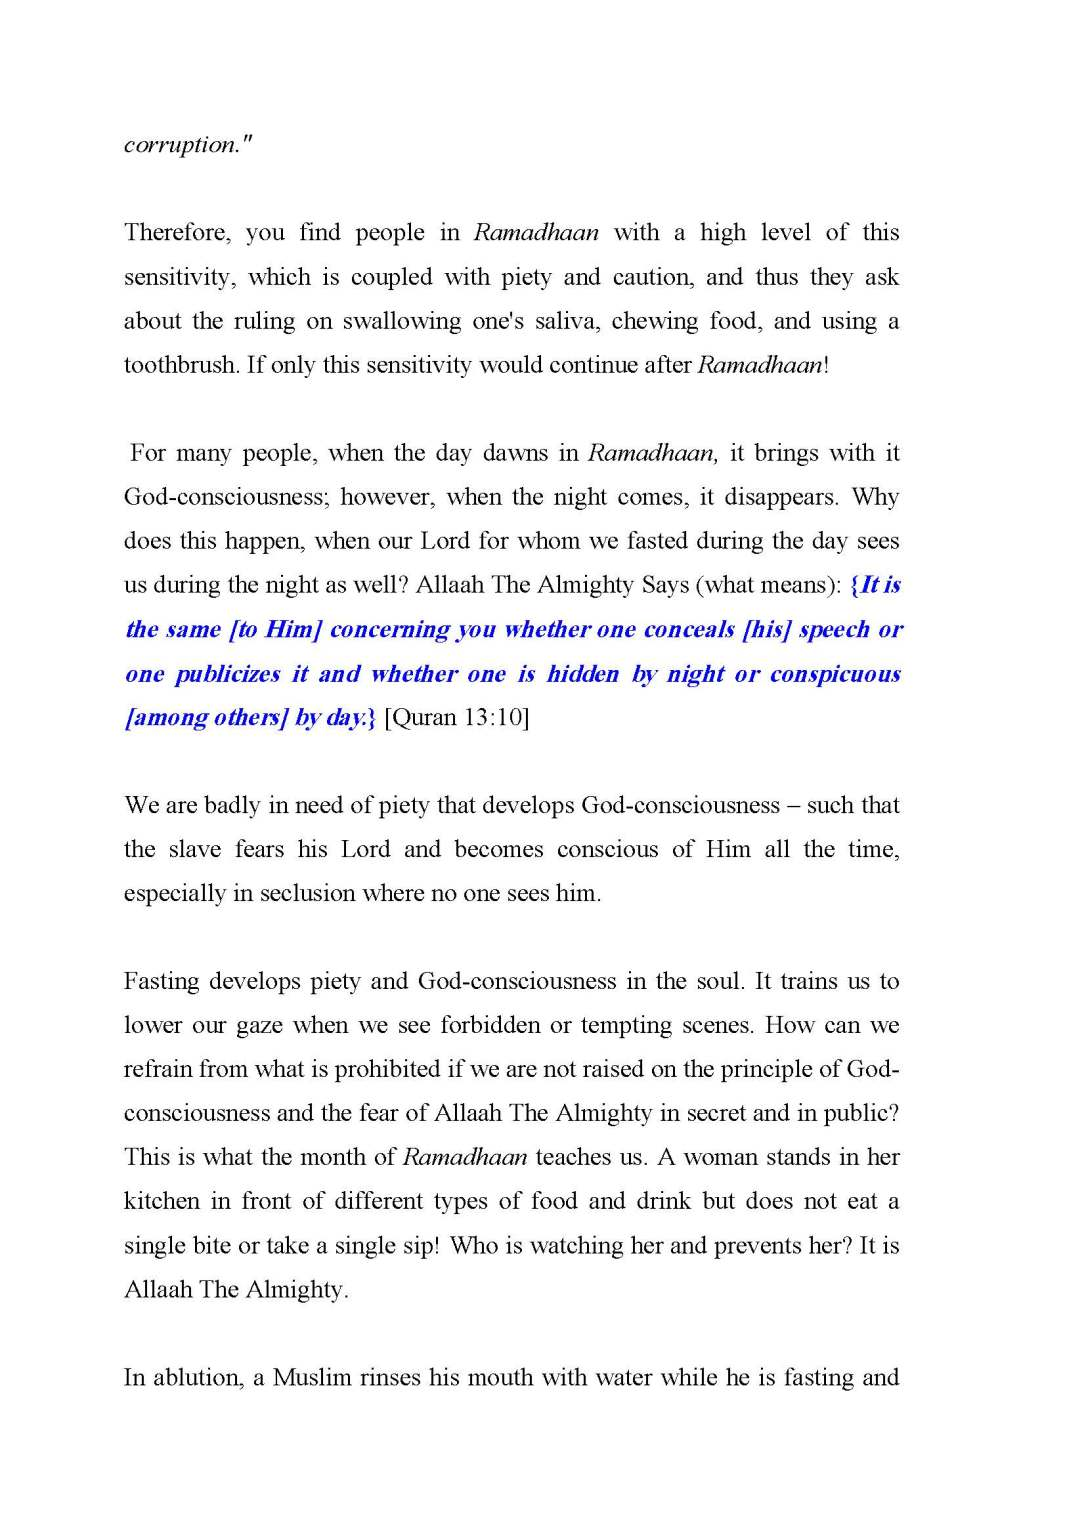 Benefits_and_Secrets_of_Fasting_Page_07